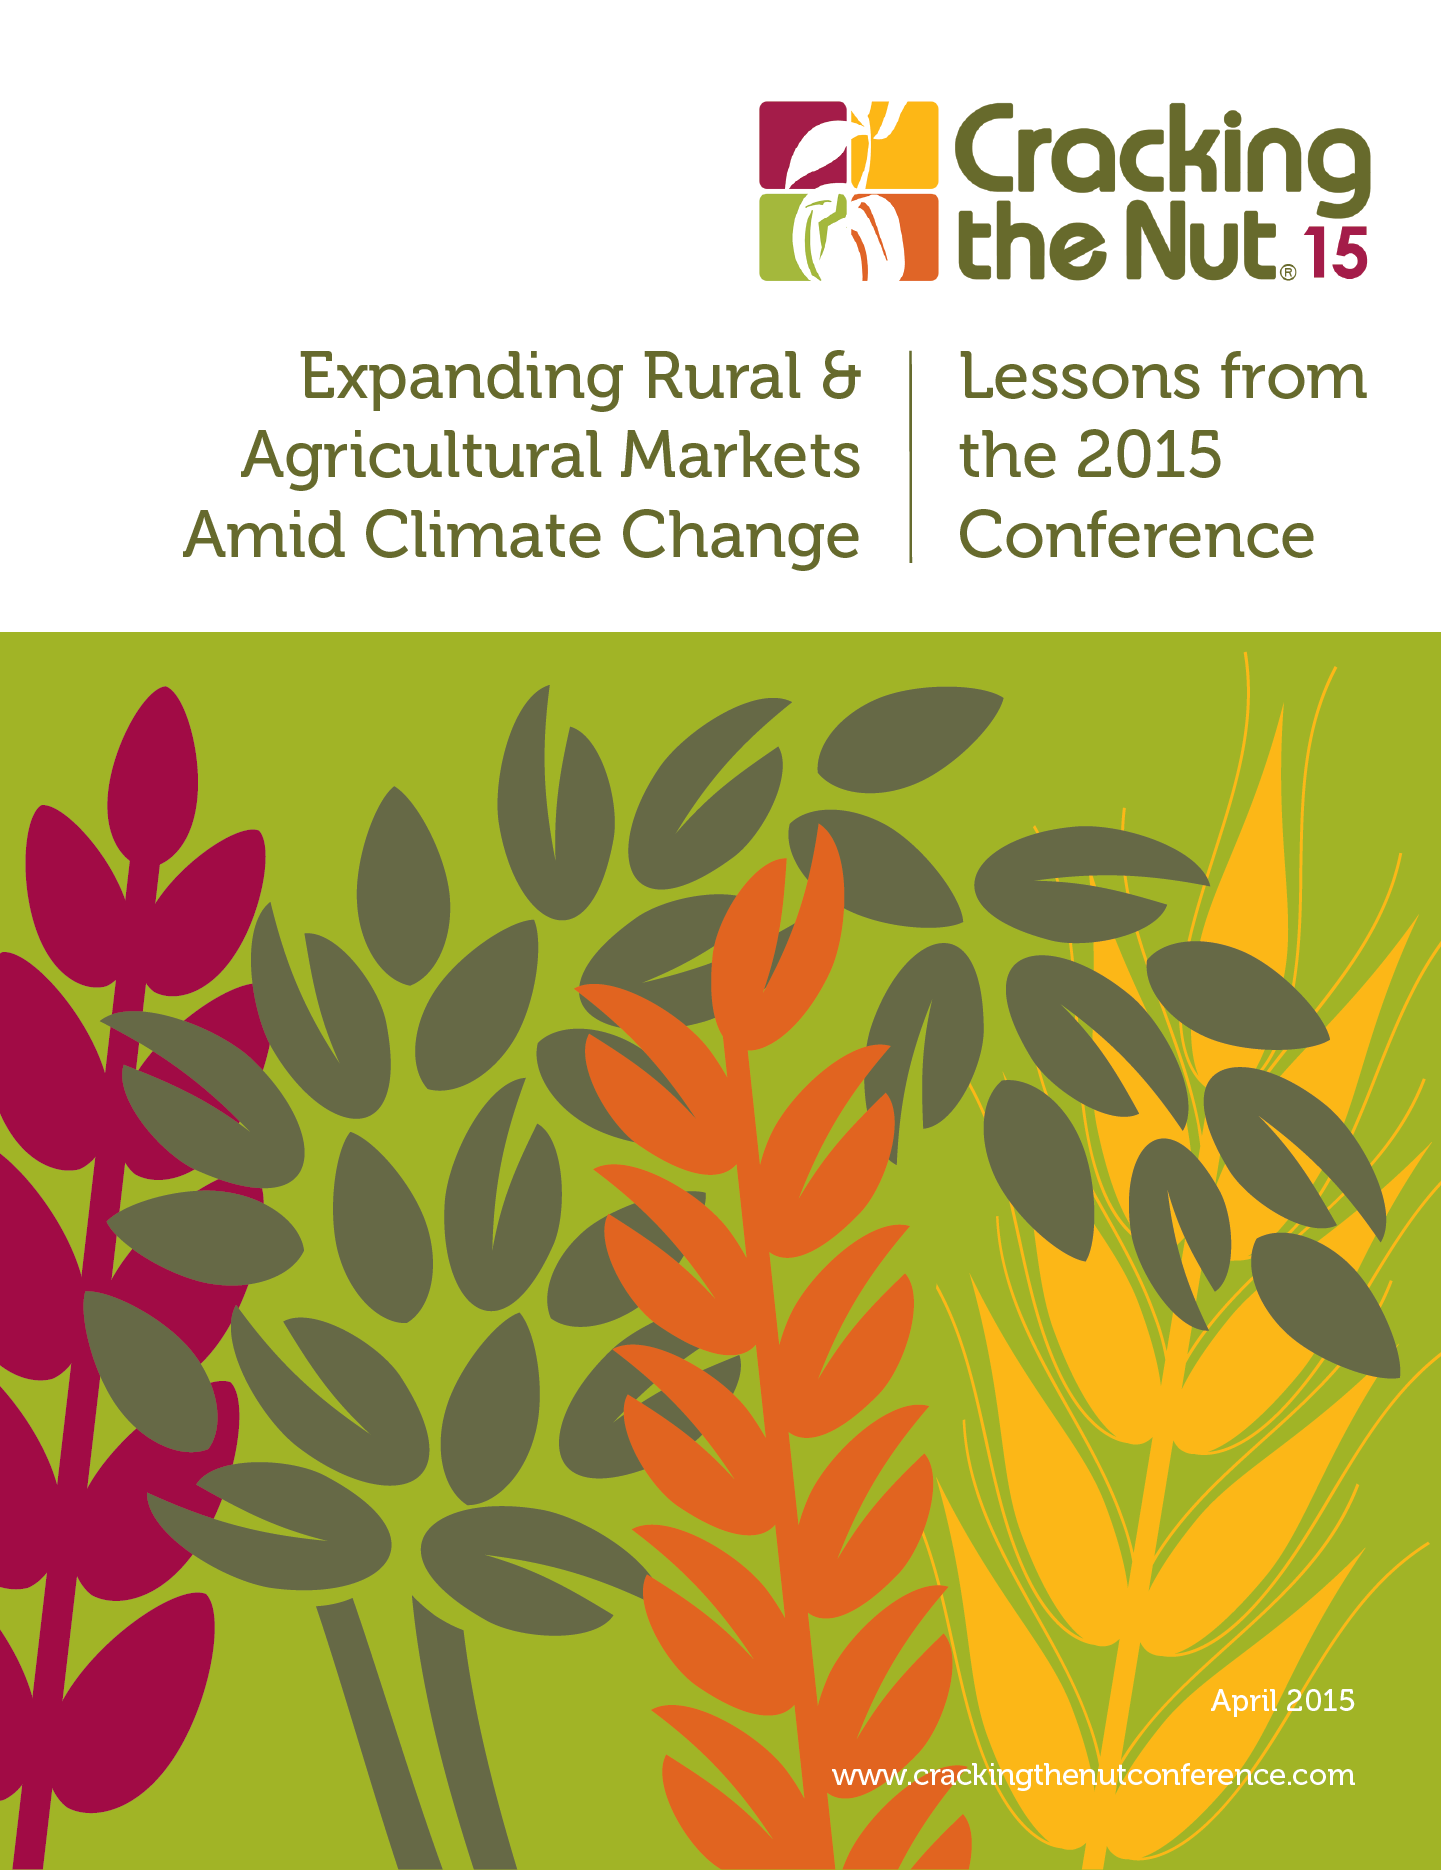 Cracking the Nut Publication 2015